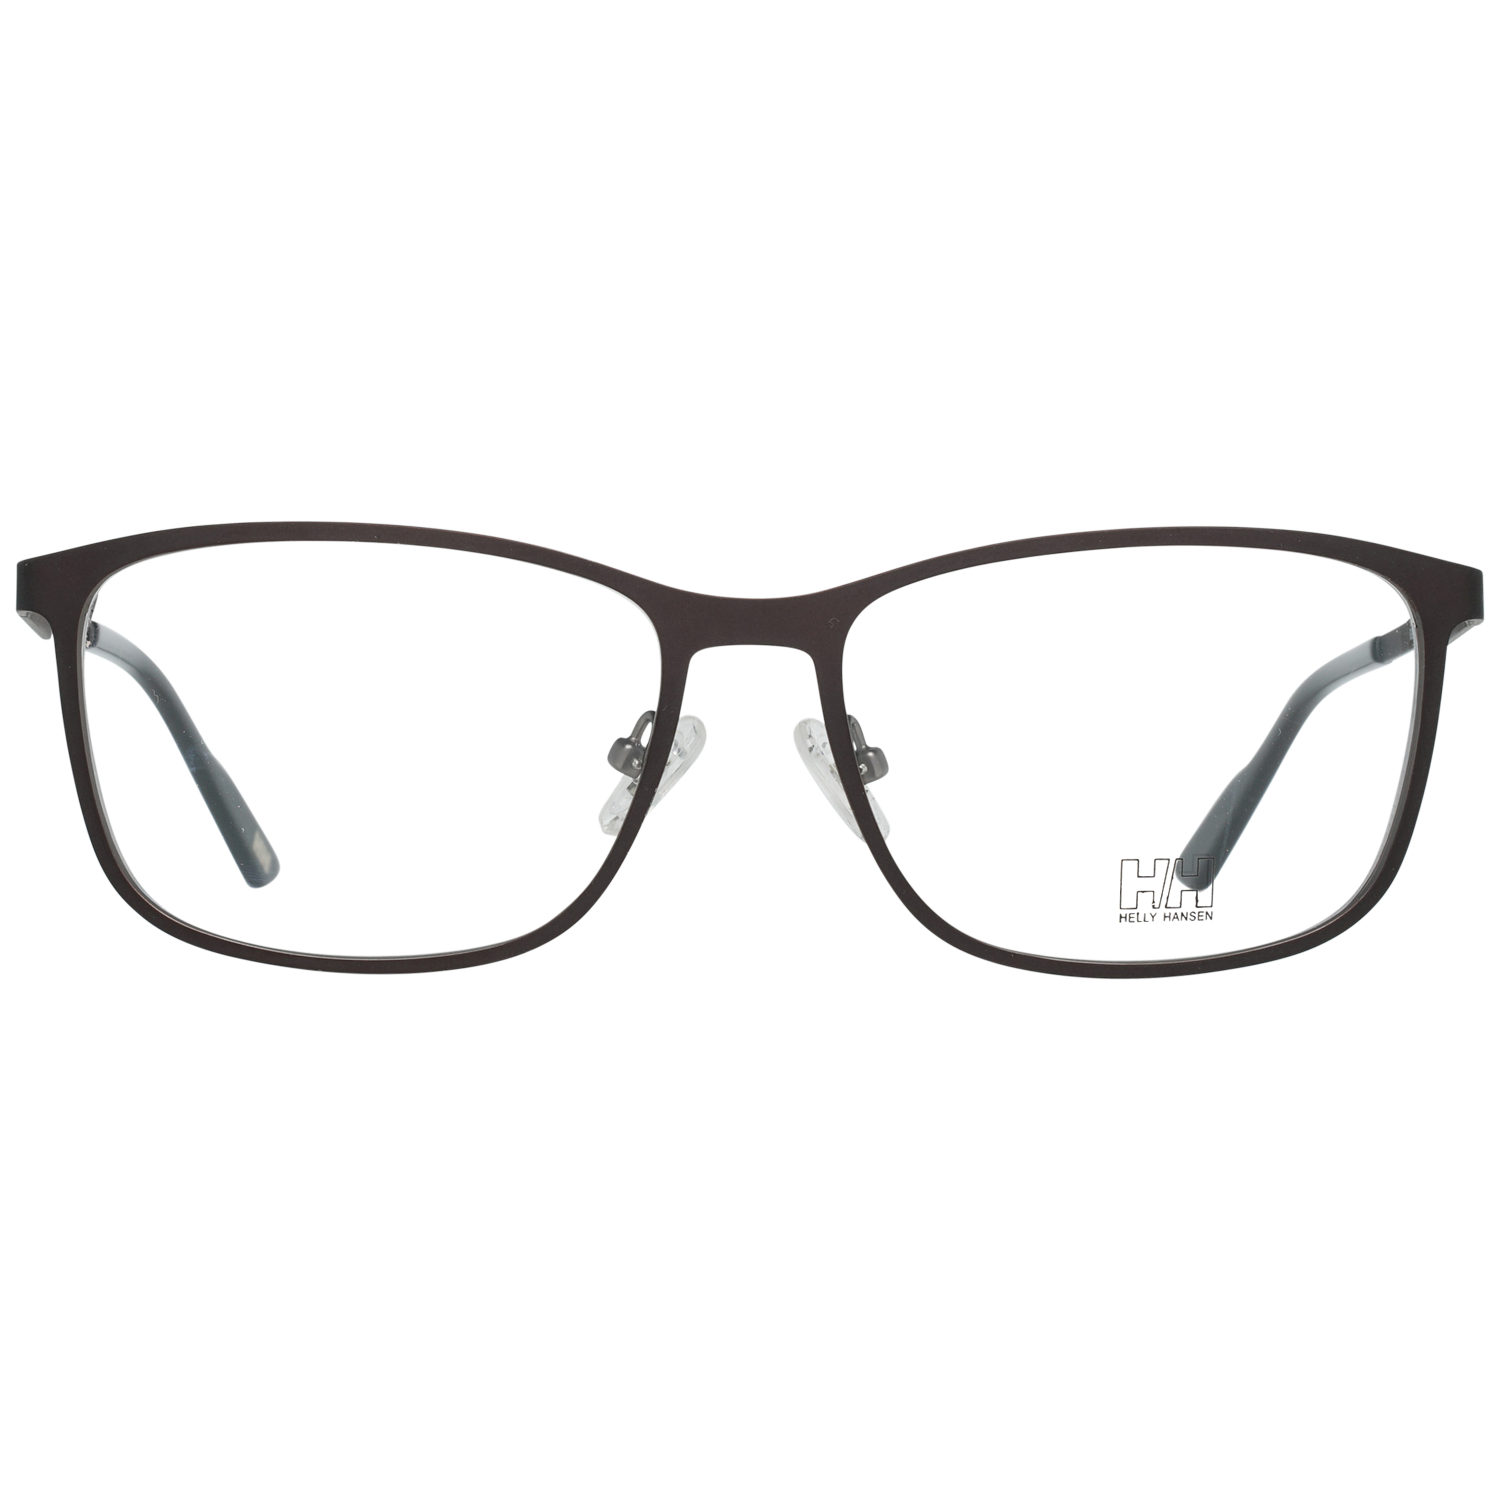 Helly Hansen Optical Frame HH1013 C02 56 Unisex Brown